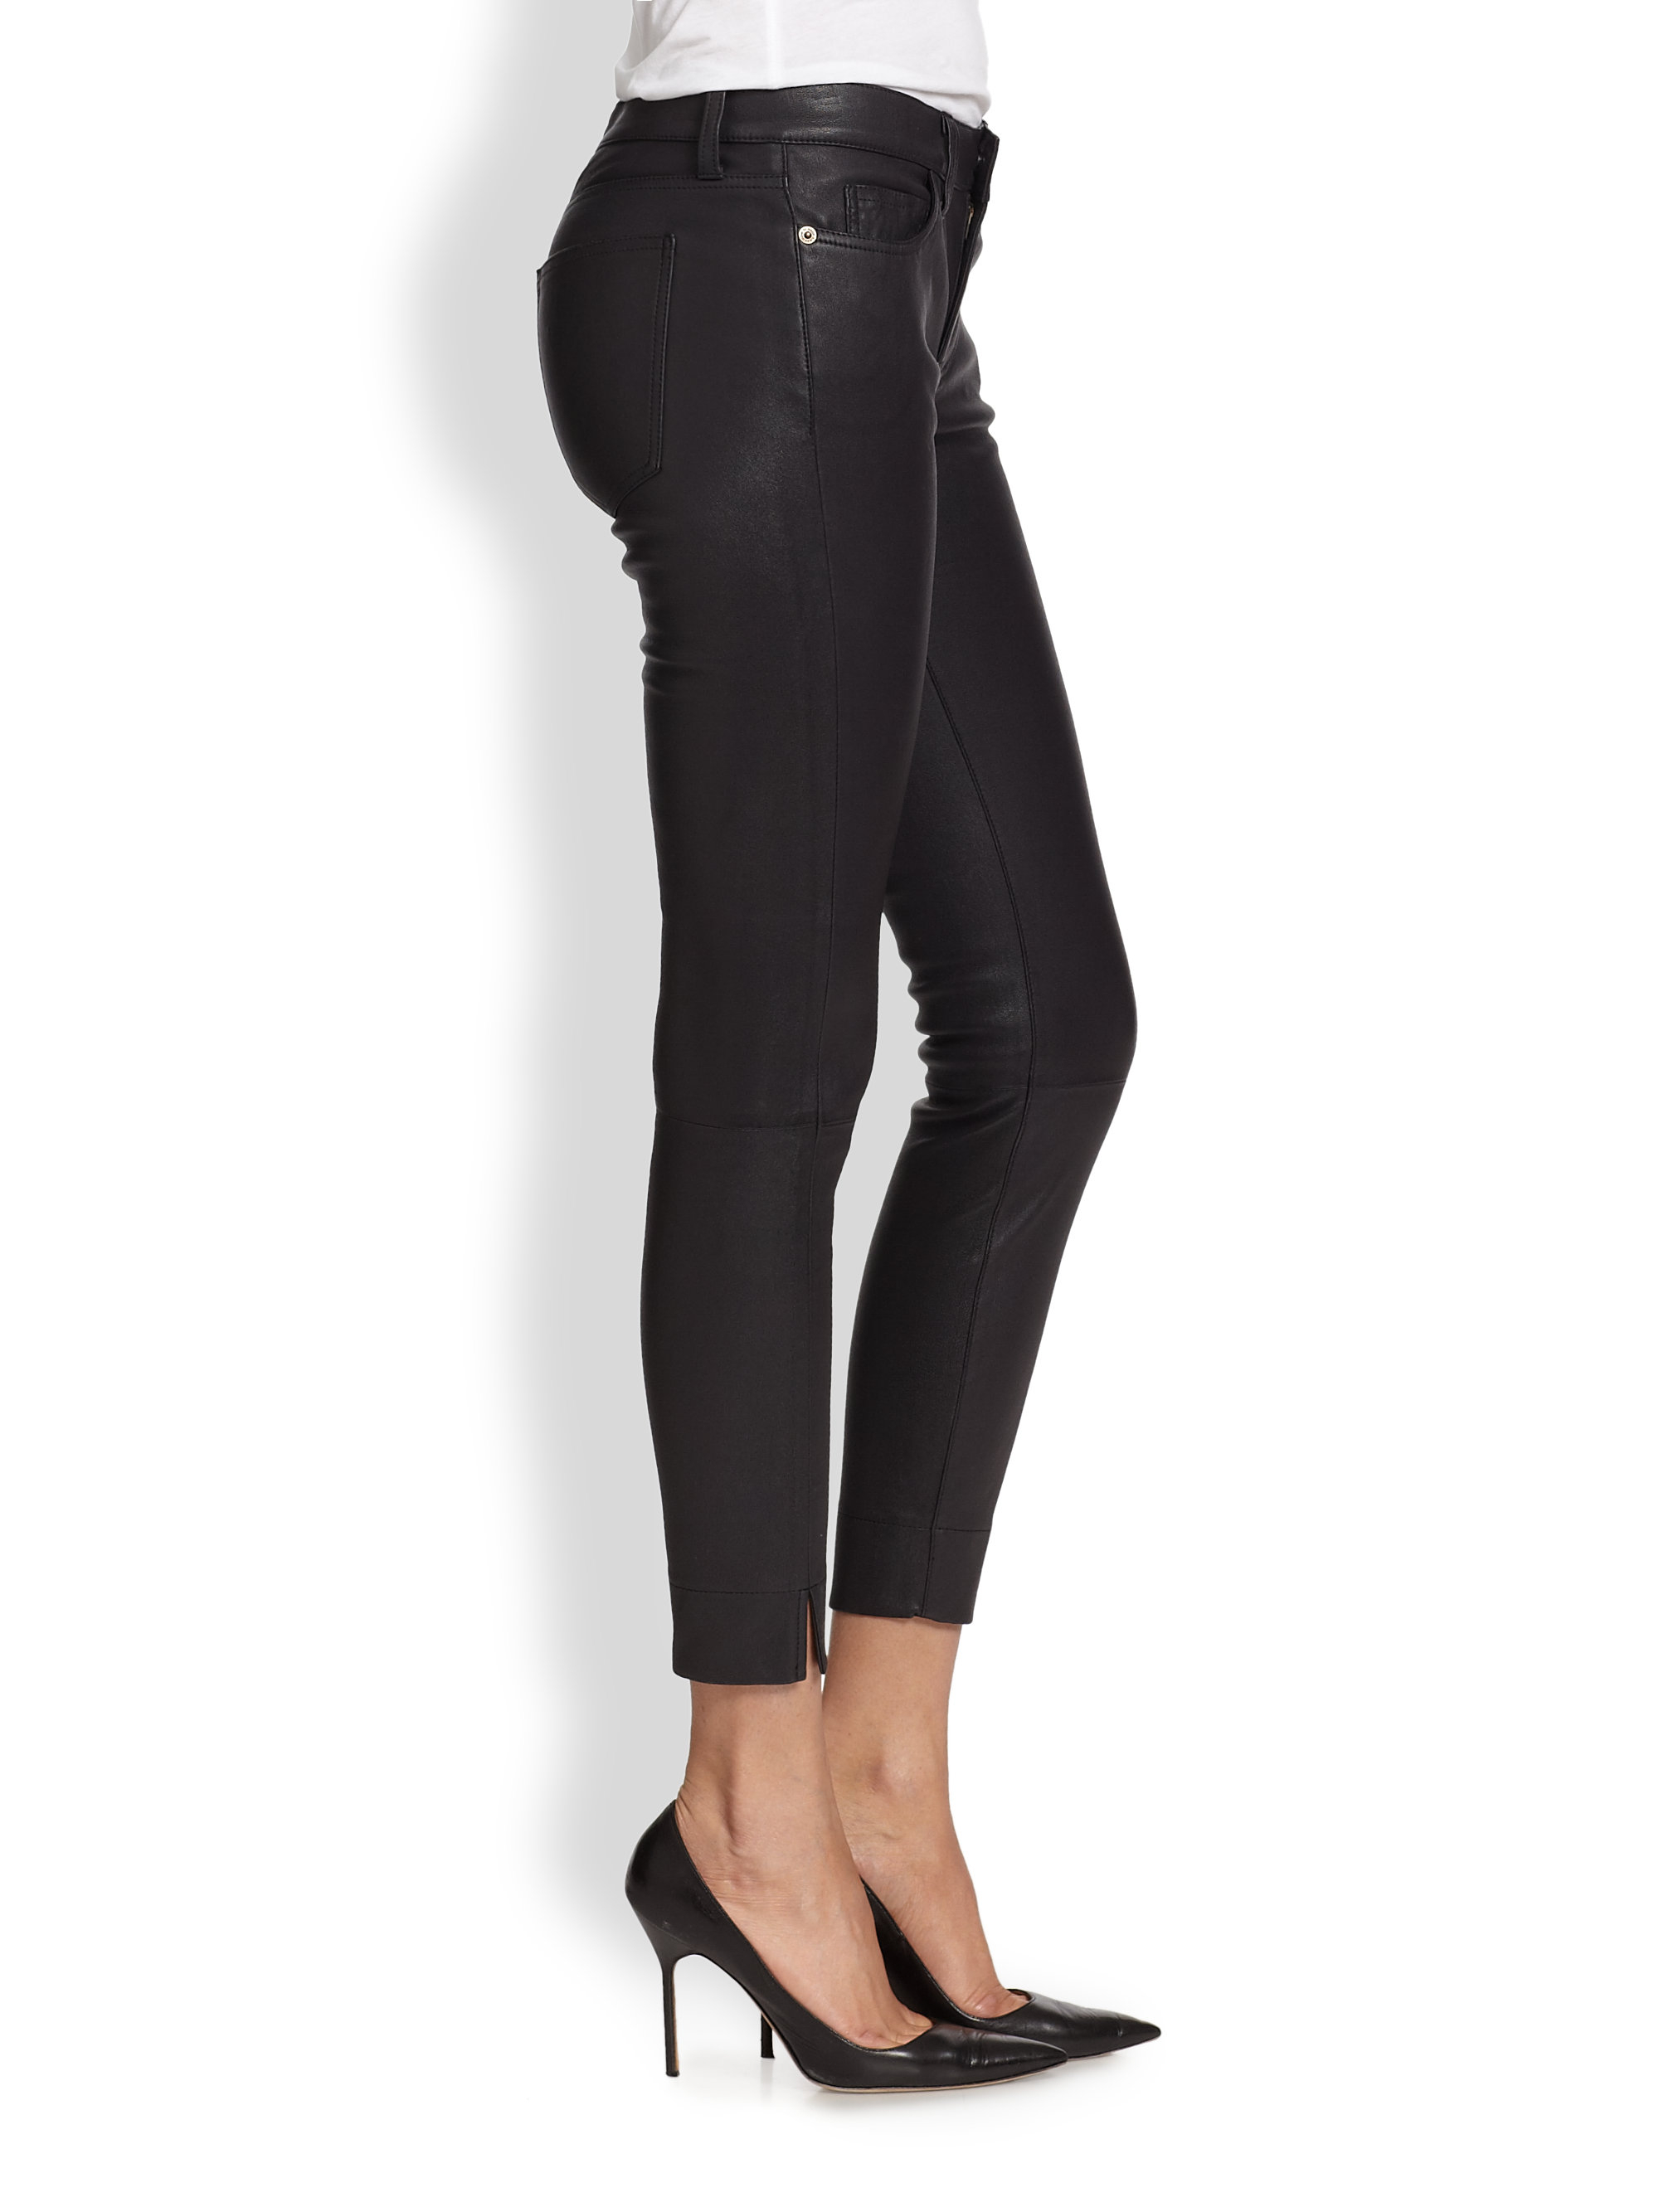 Shop women's cropped skinny jeans at the Official Joe's Jeans Online Store. Find premium denim jeans in all colors, sizes and washes.